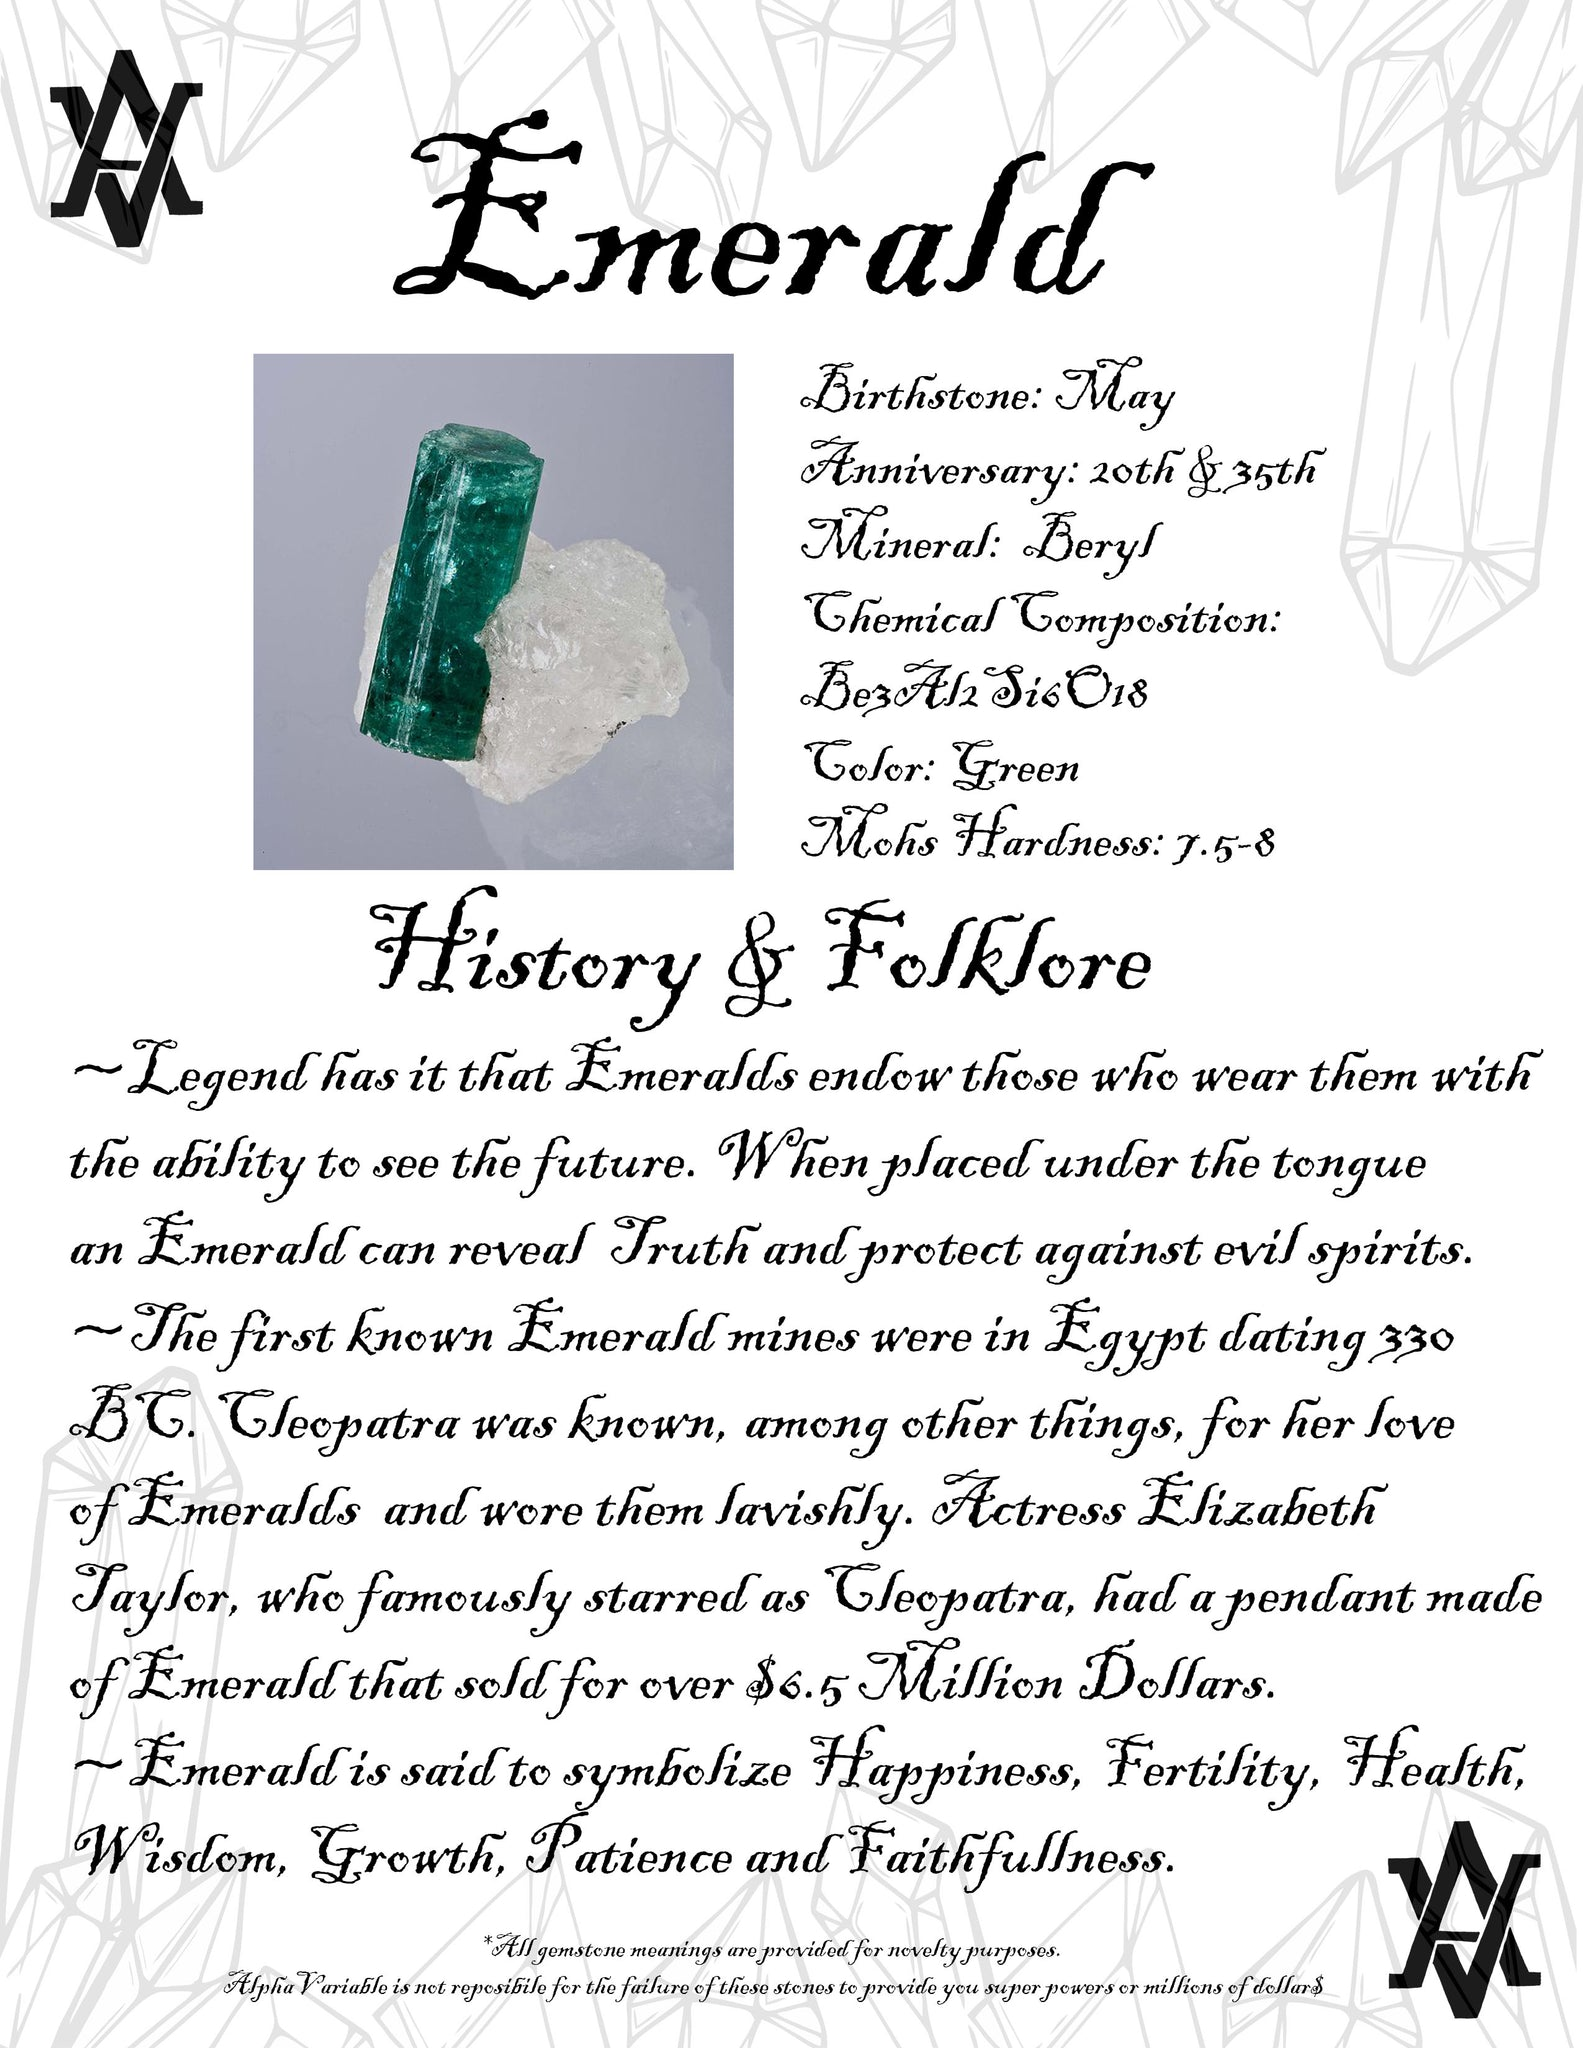 Emerald Crystal Gemstone Meaning History And Folklore